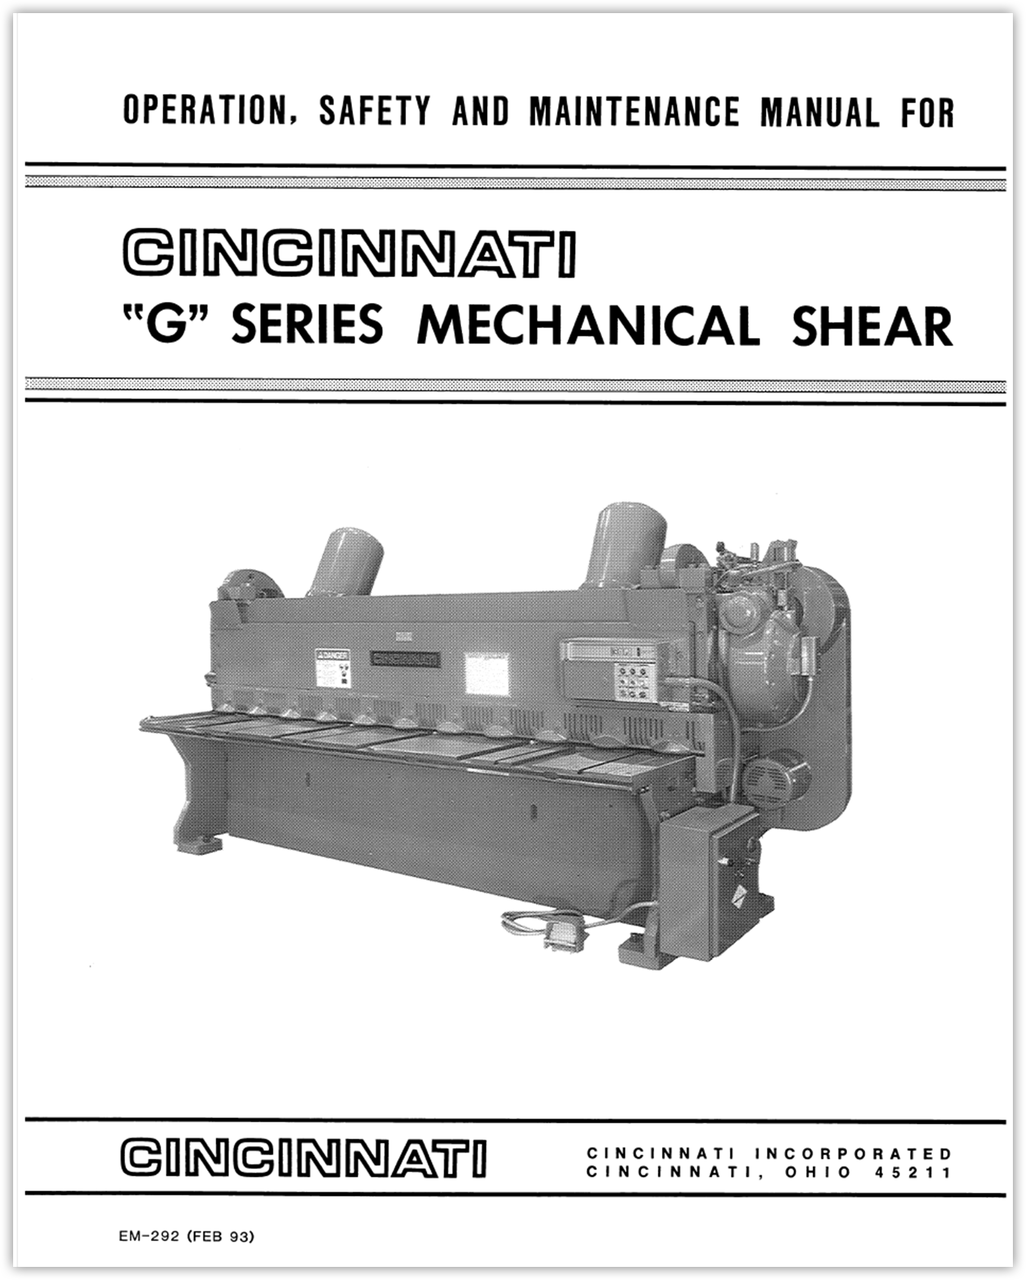 EM-292 (FEB 93) G Series Mechanical Shear Operation, Safety and Maintenance Manual